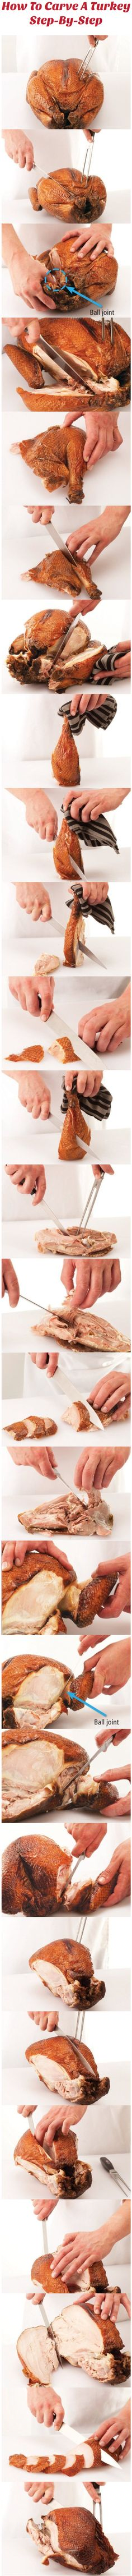 Hosting your first #Thanksgiving dinner? Check out these step-by-step #turkey #carving instructions! holiday, turkey carv, idea, food, recip, kitchen, stepbystep turkey, trick, christma